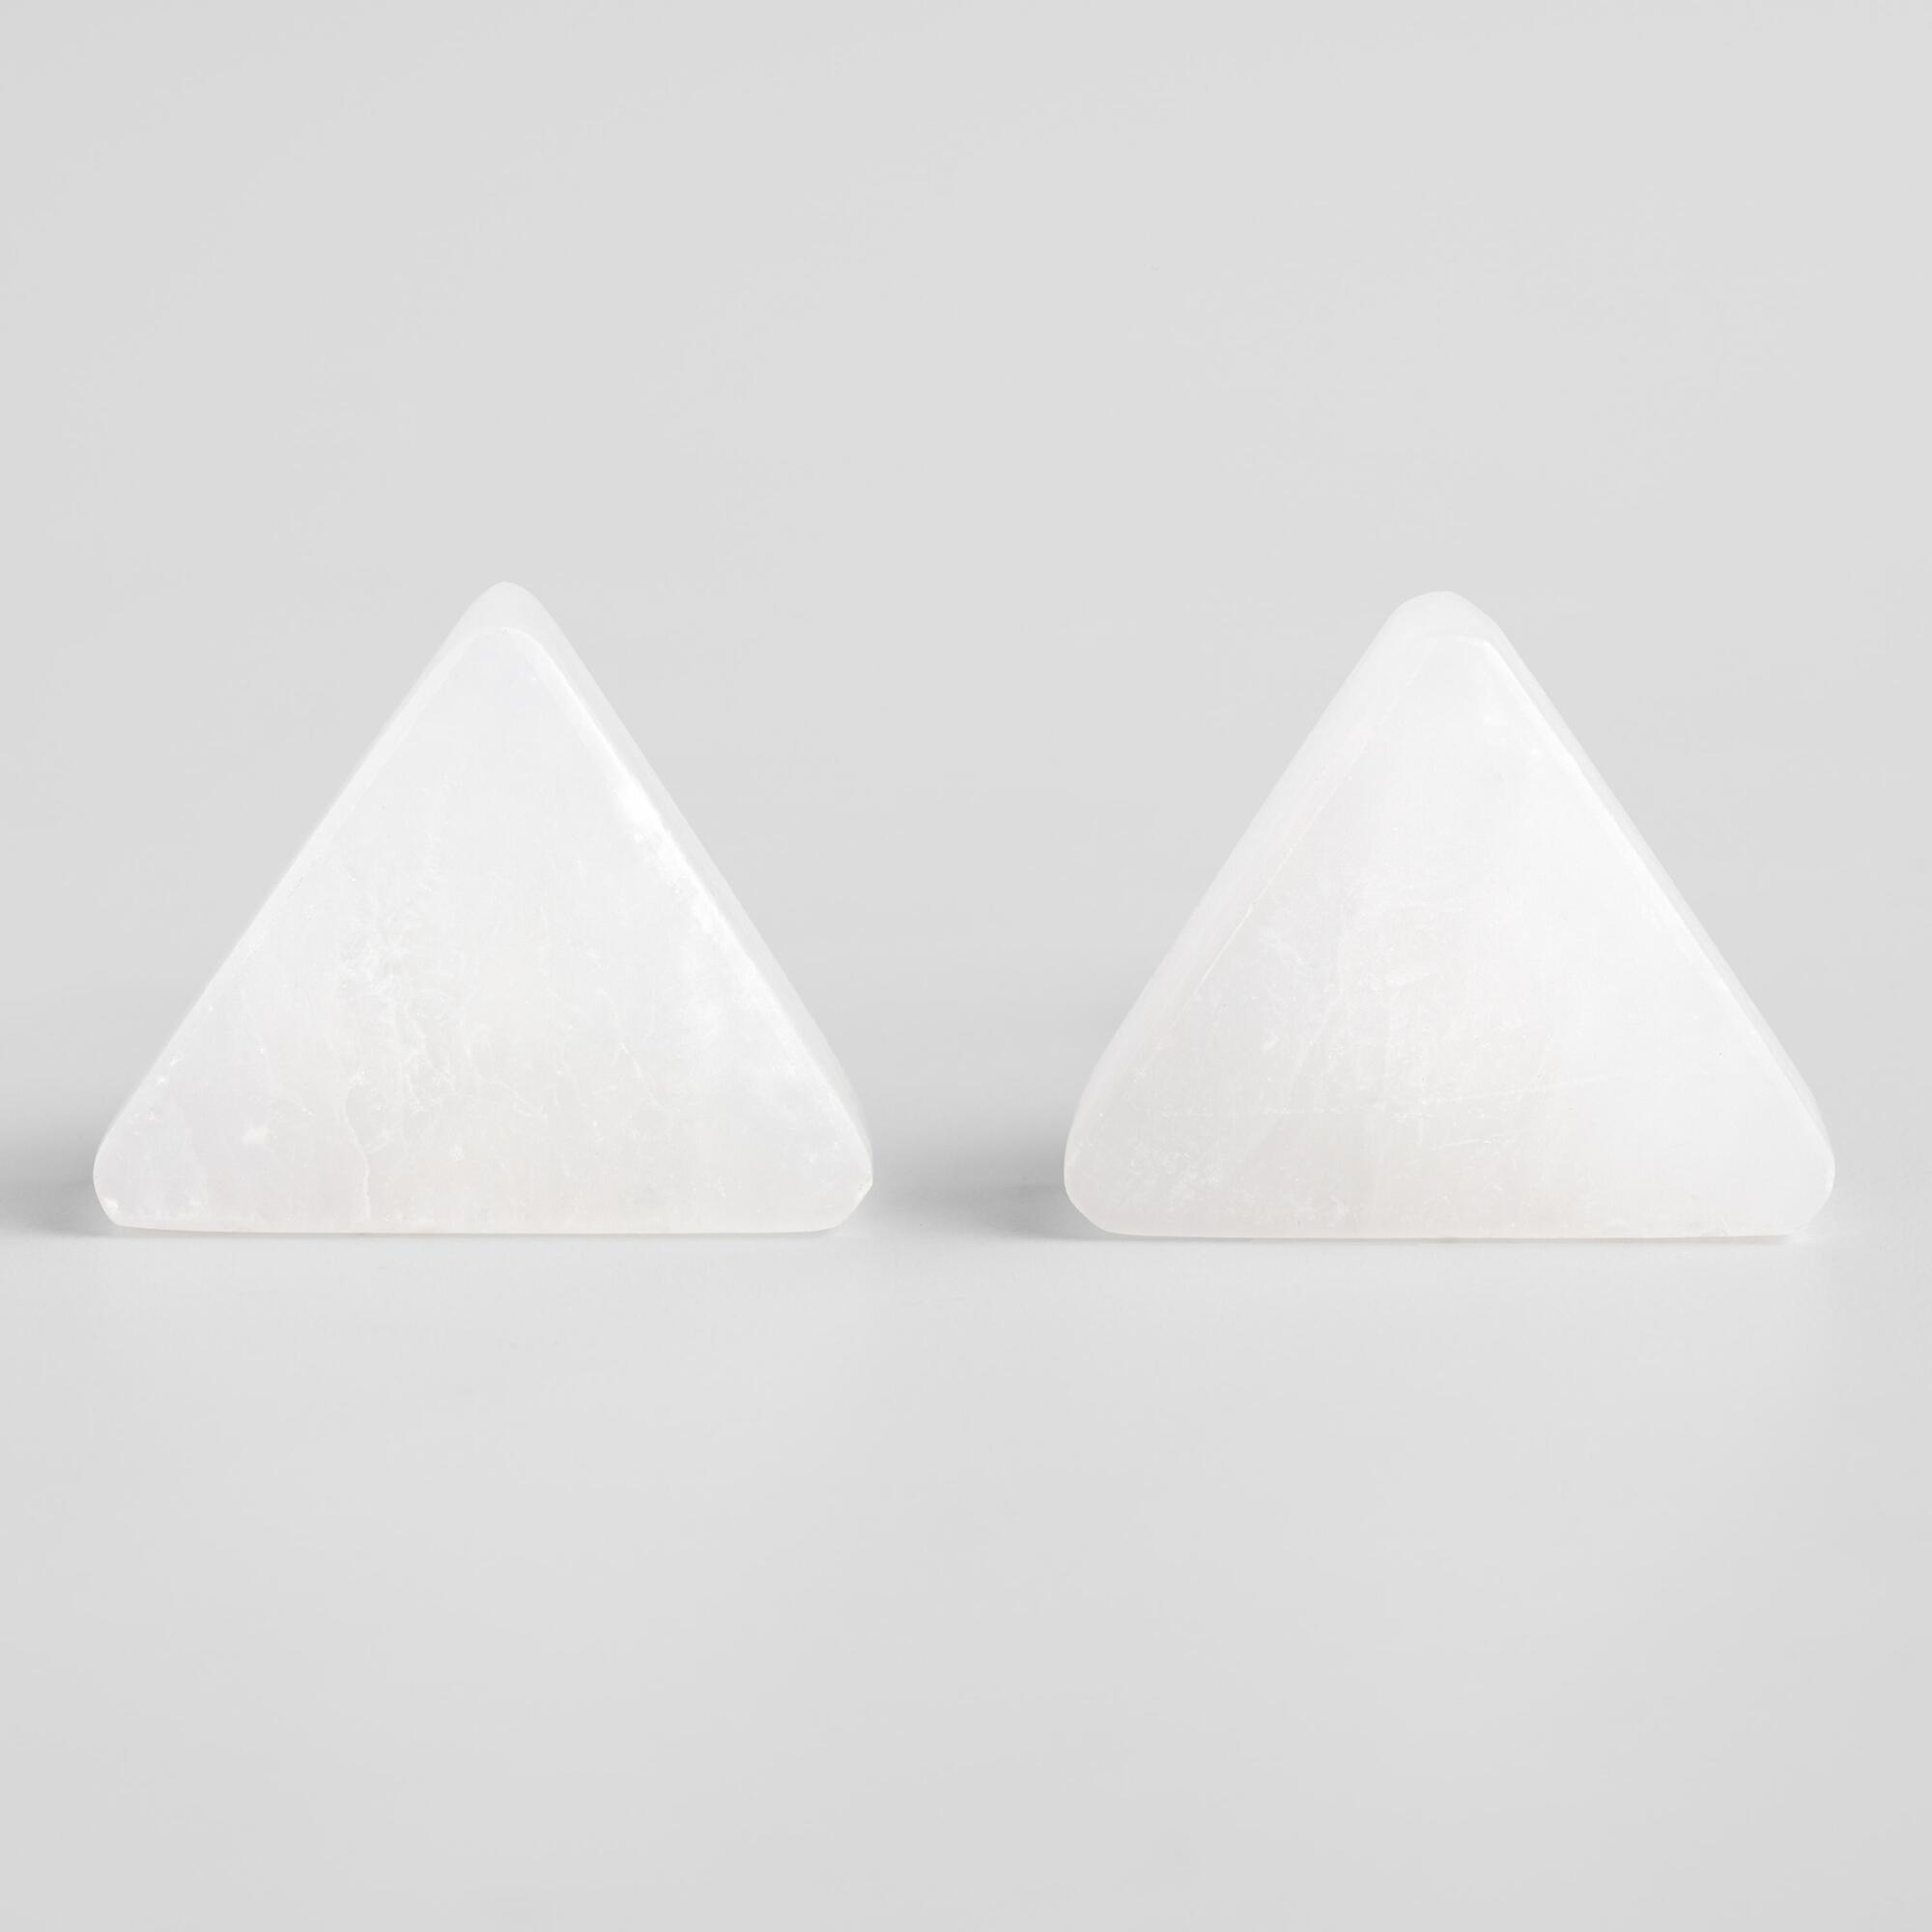 White Marble Triangle Knobs Set of 2 by World Market